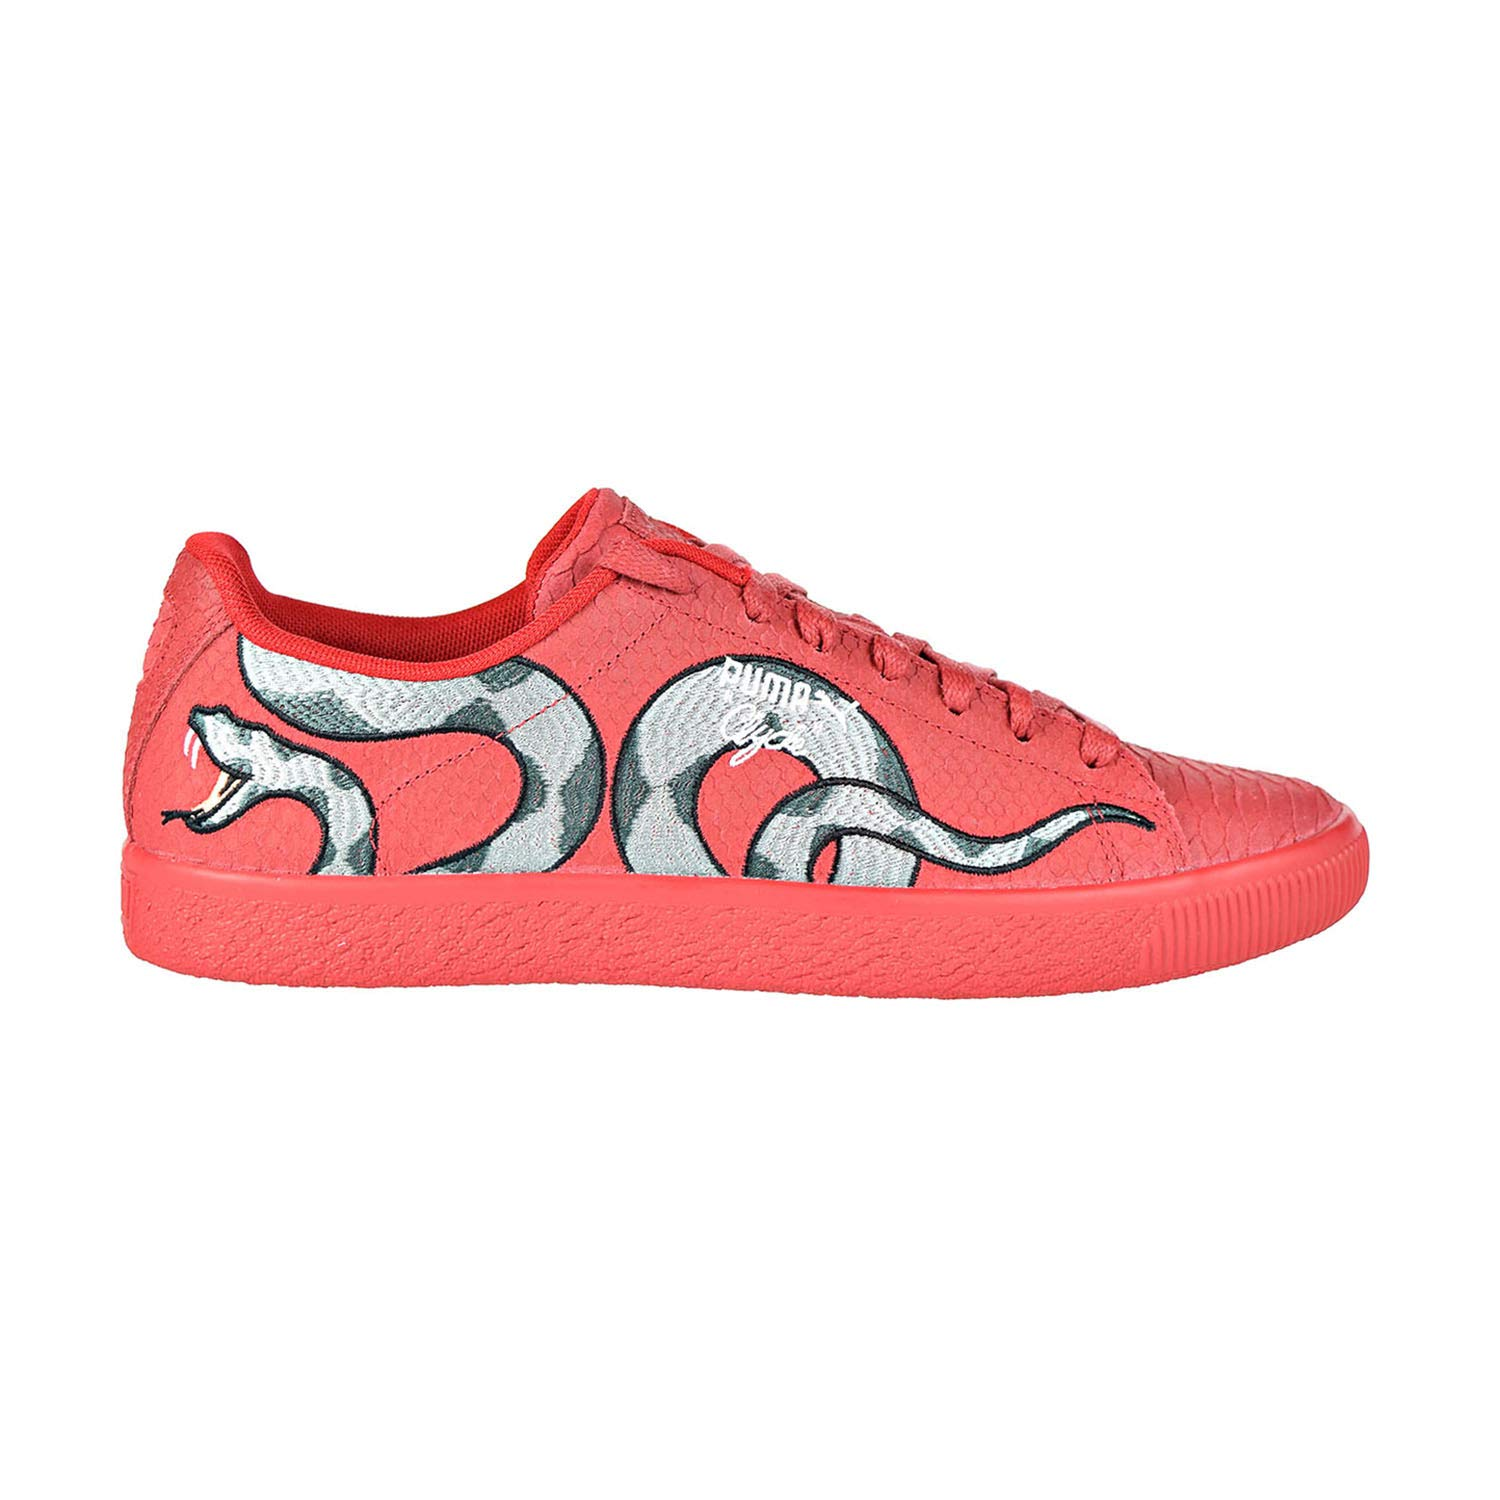 reputable site 0e6a7 5d8fa Amazon.com | PUMA Clyde Snake Embroidery | Shoes